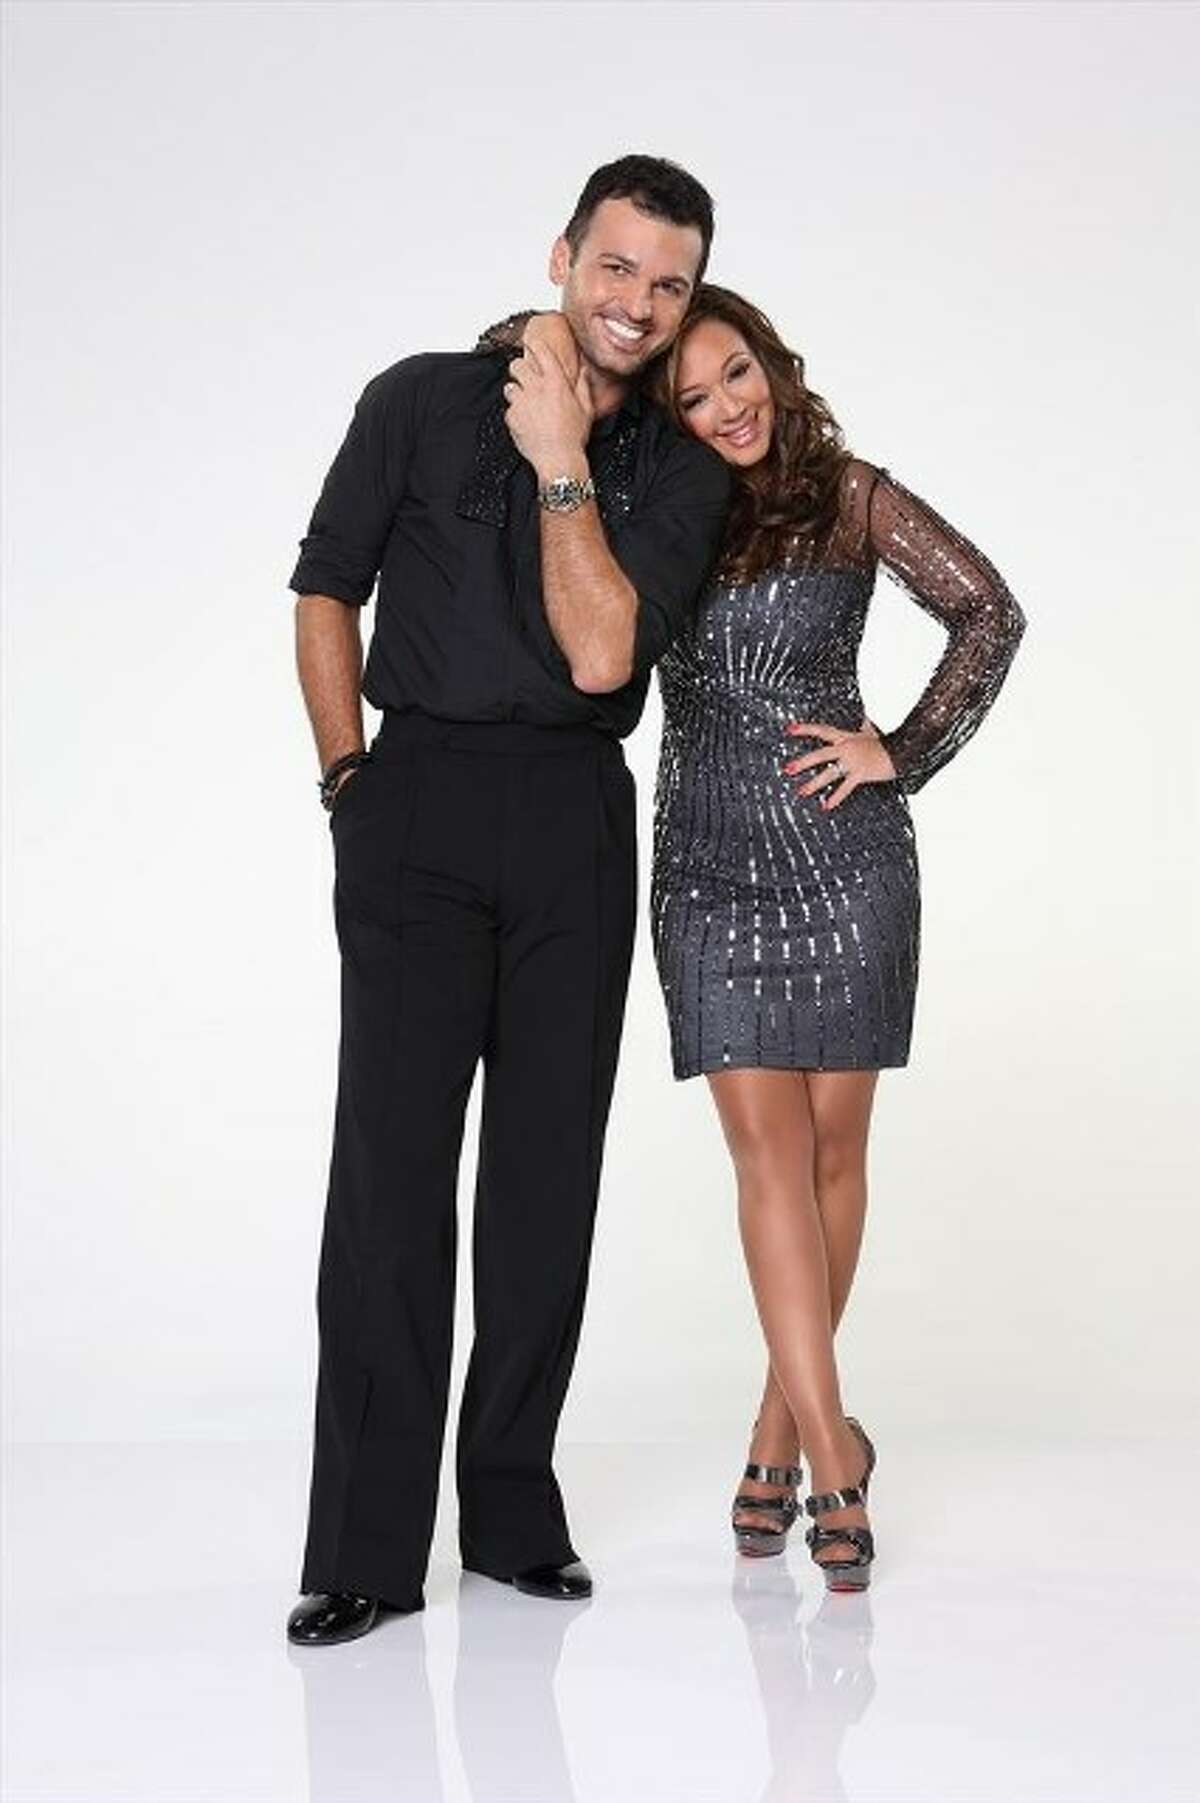 Leakes will dance with Tony Dovolani, shown here with Leah Remini.